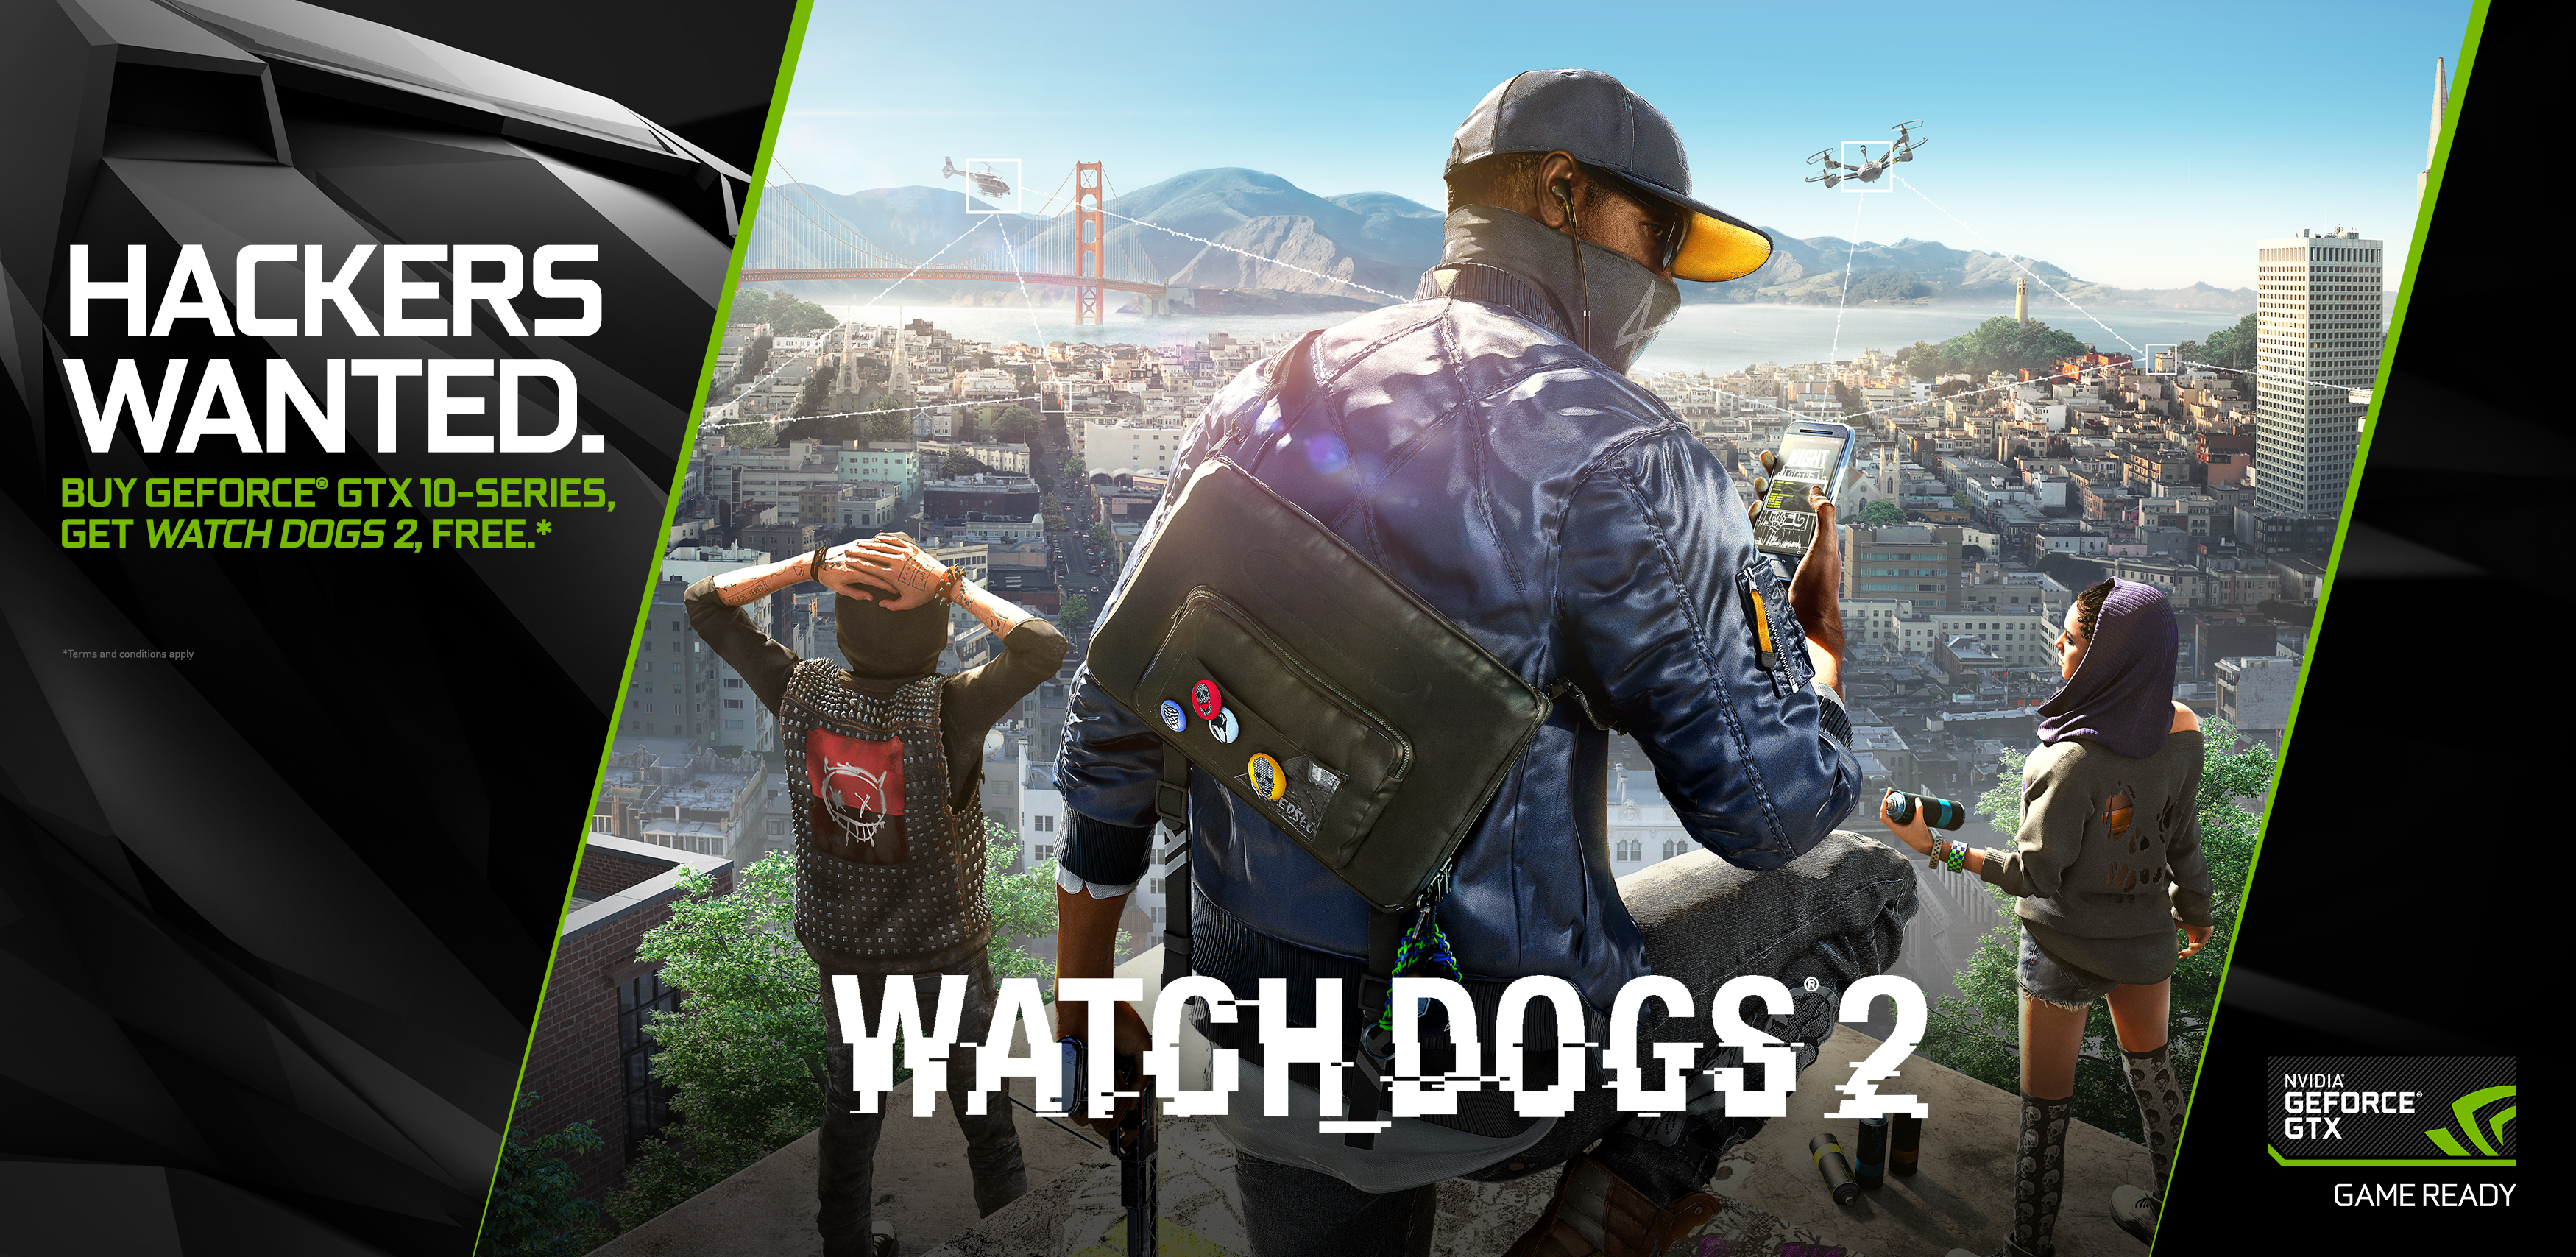 Cool Car Game Wallpapers Watch Dogs 2 Pc Gets Nvidia Gameworks Trailer